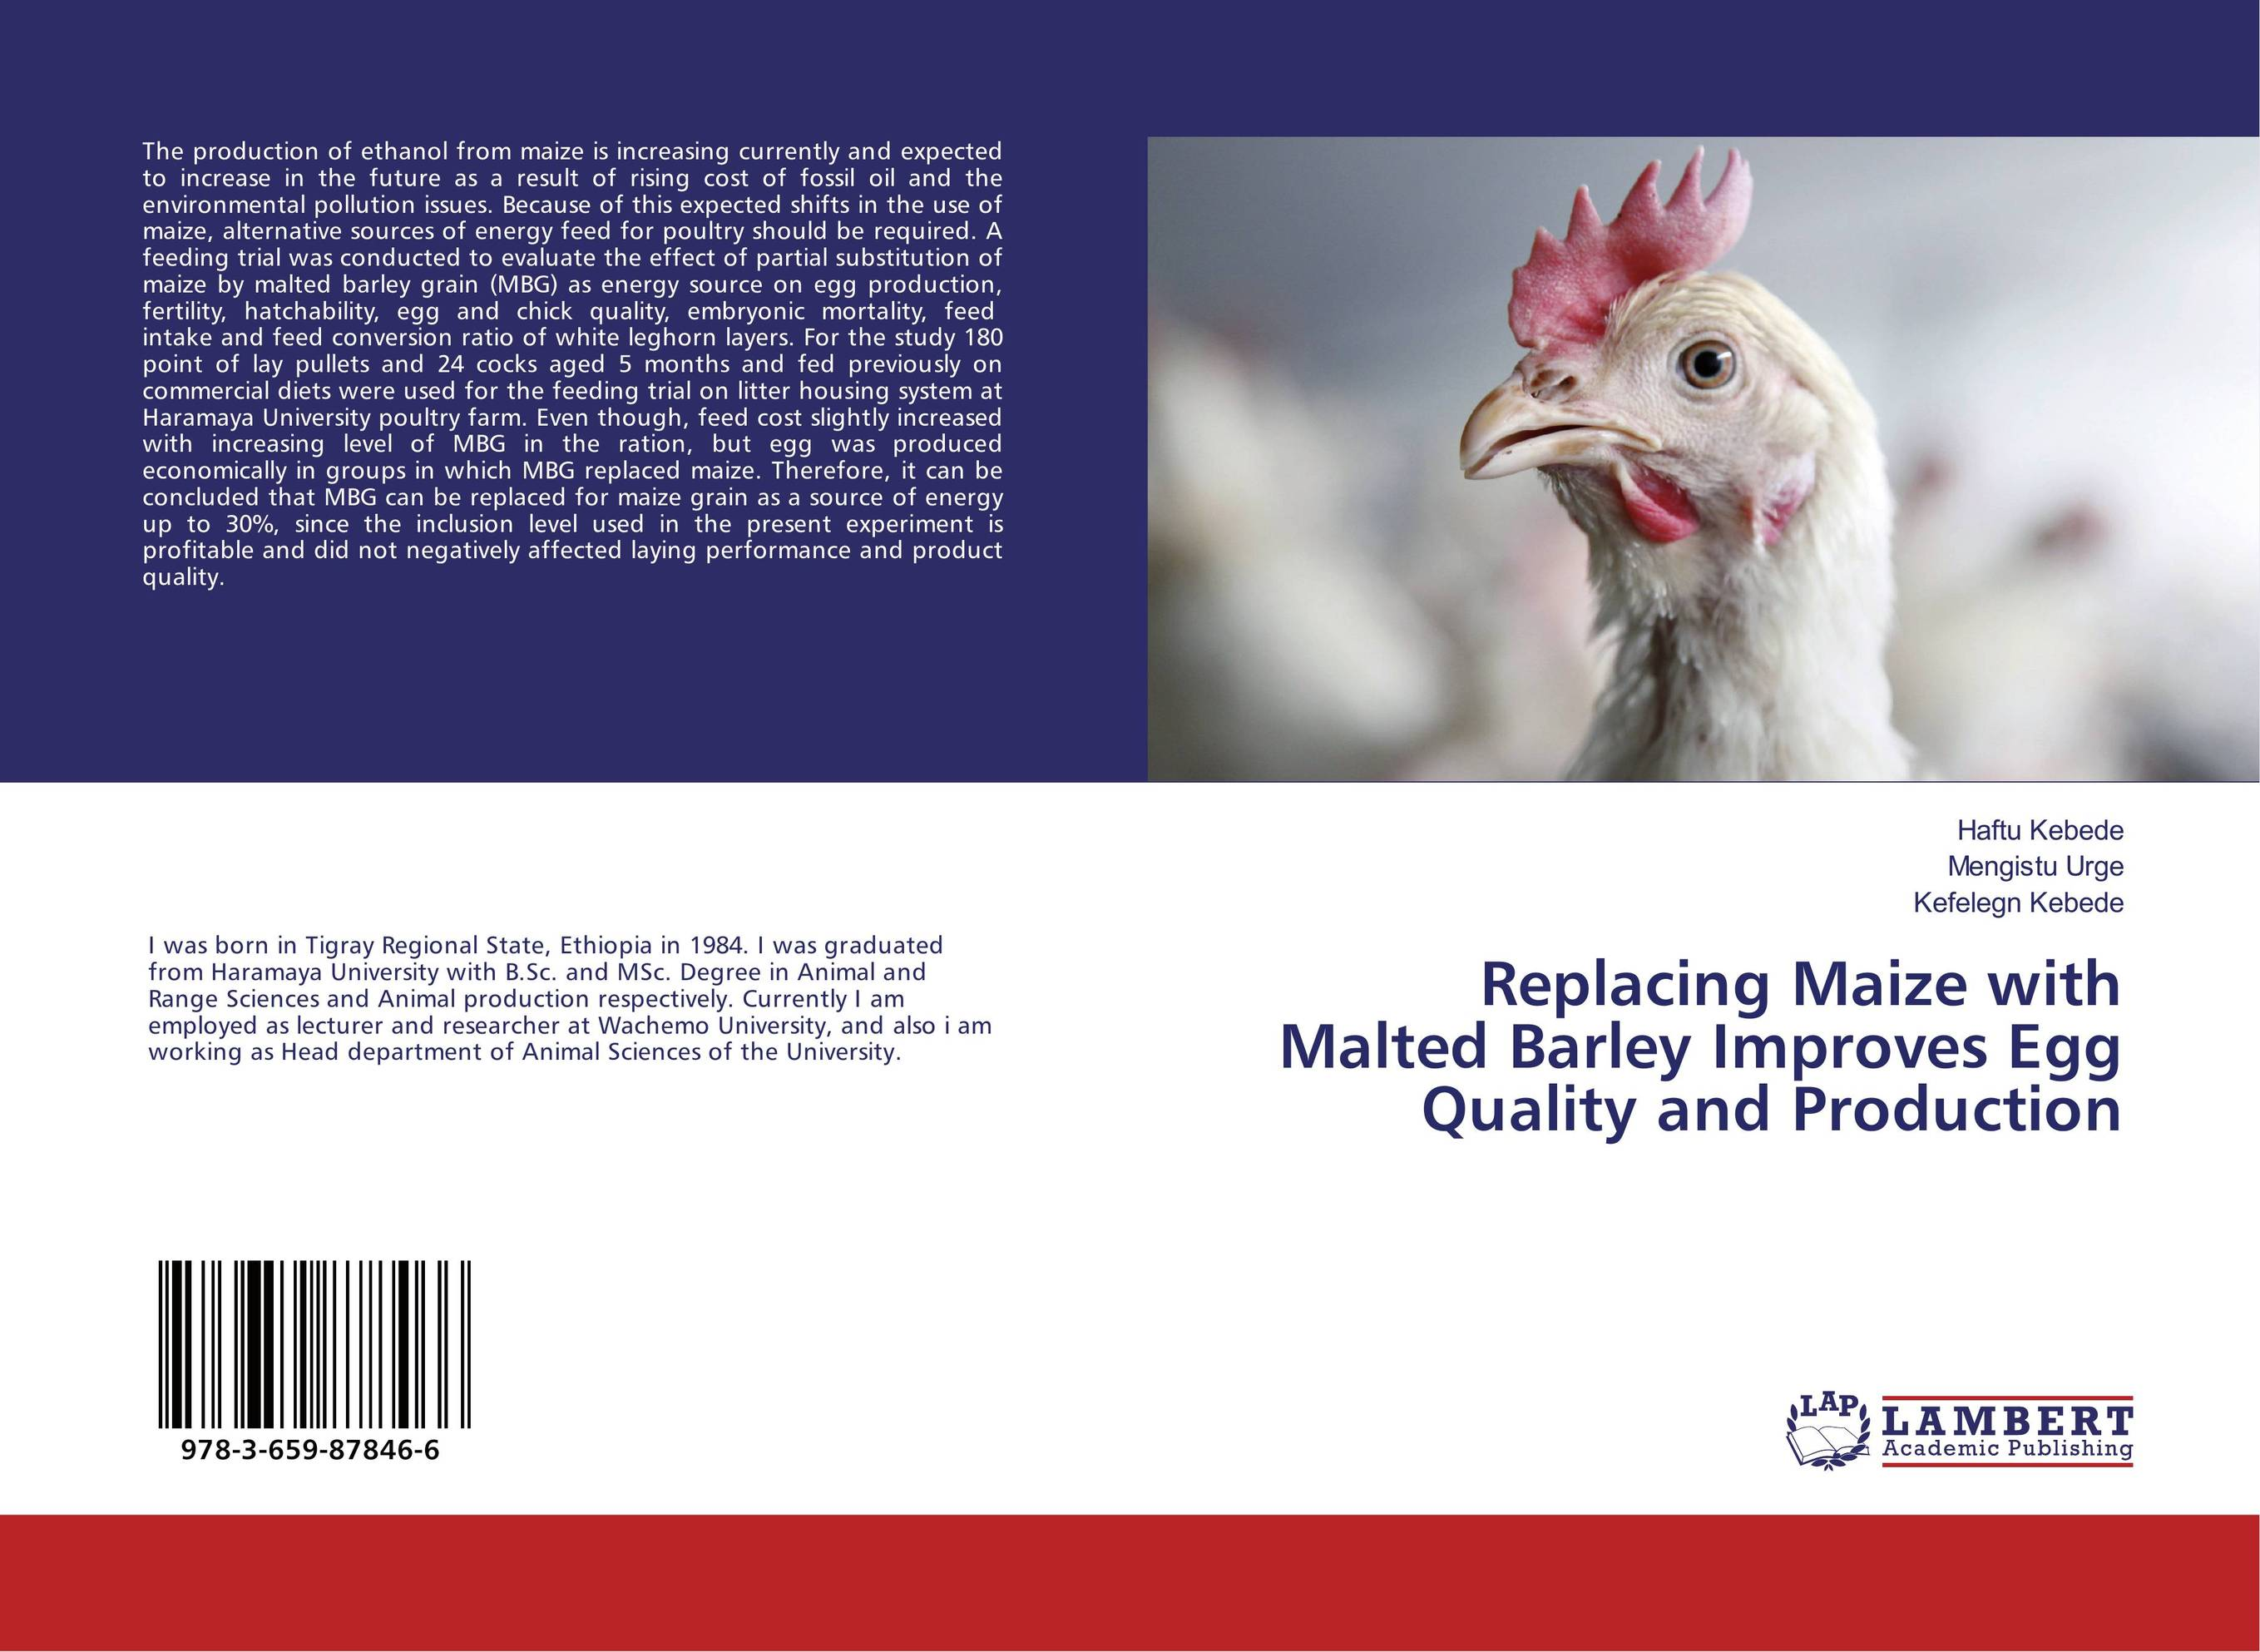 Replacing Maize with Malted Barley Improves Egg Quality and Production estimating the quantity and quality of poultry litter in tamilnadu